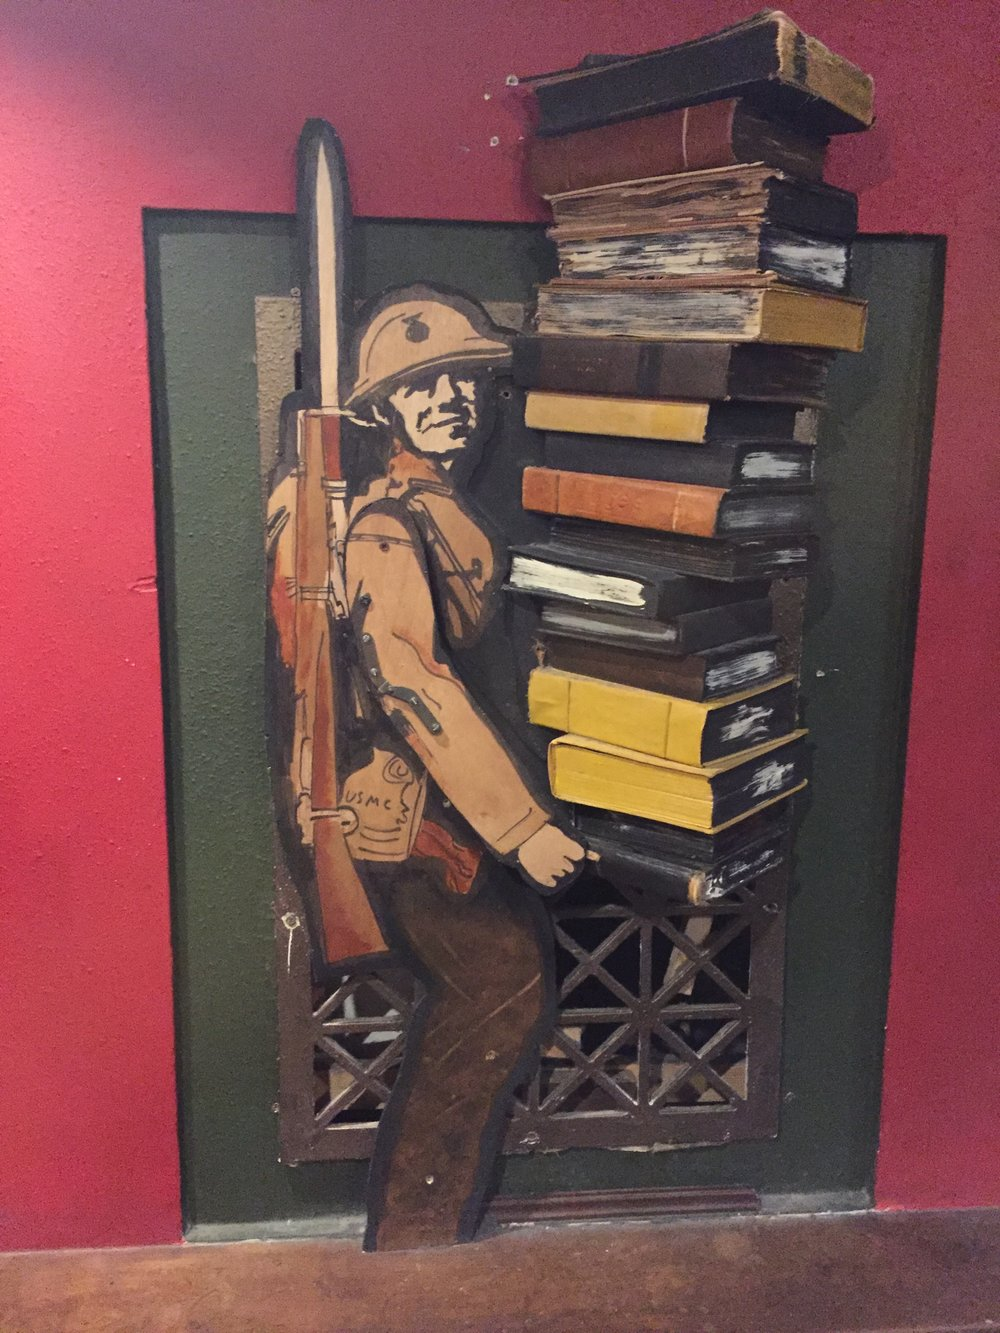 [image description: A piece of book art on the wall in front of an old air grate. It's a soldier, similar in appearance to those in World War I (dressed in all brown with a rifle with a bayonet slung over his shoulder), holding a stack of books that's nearly as tall as he is.]